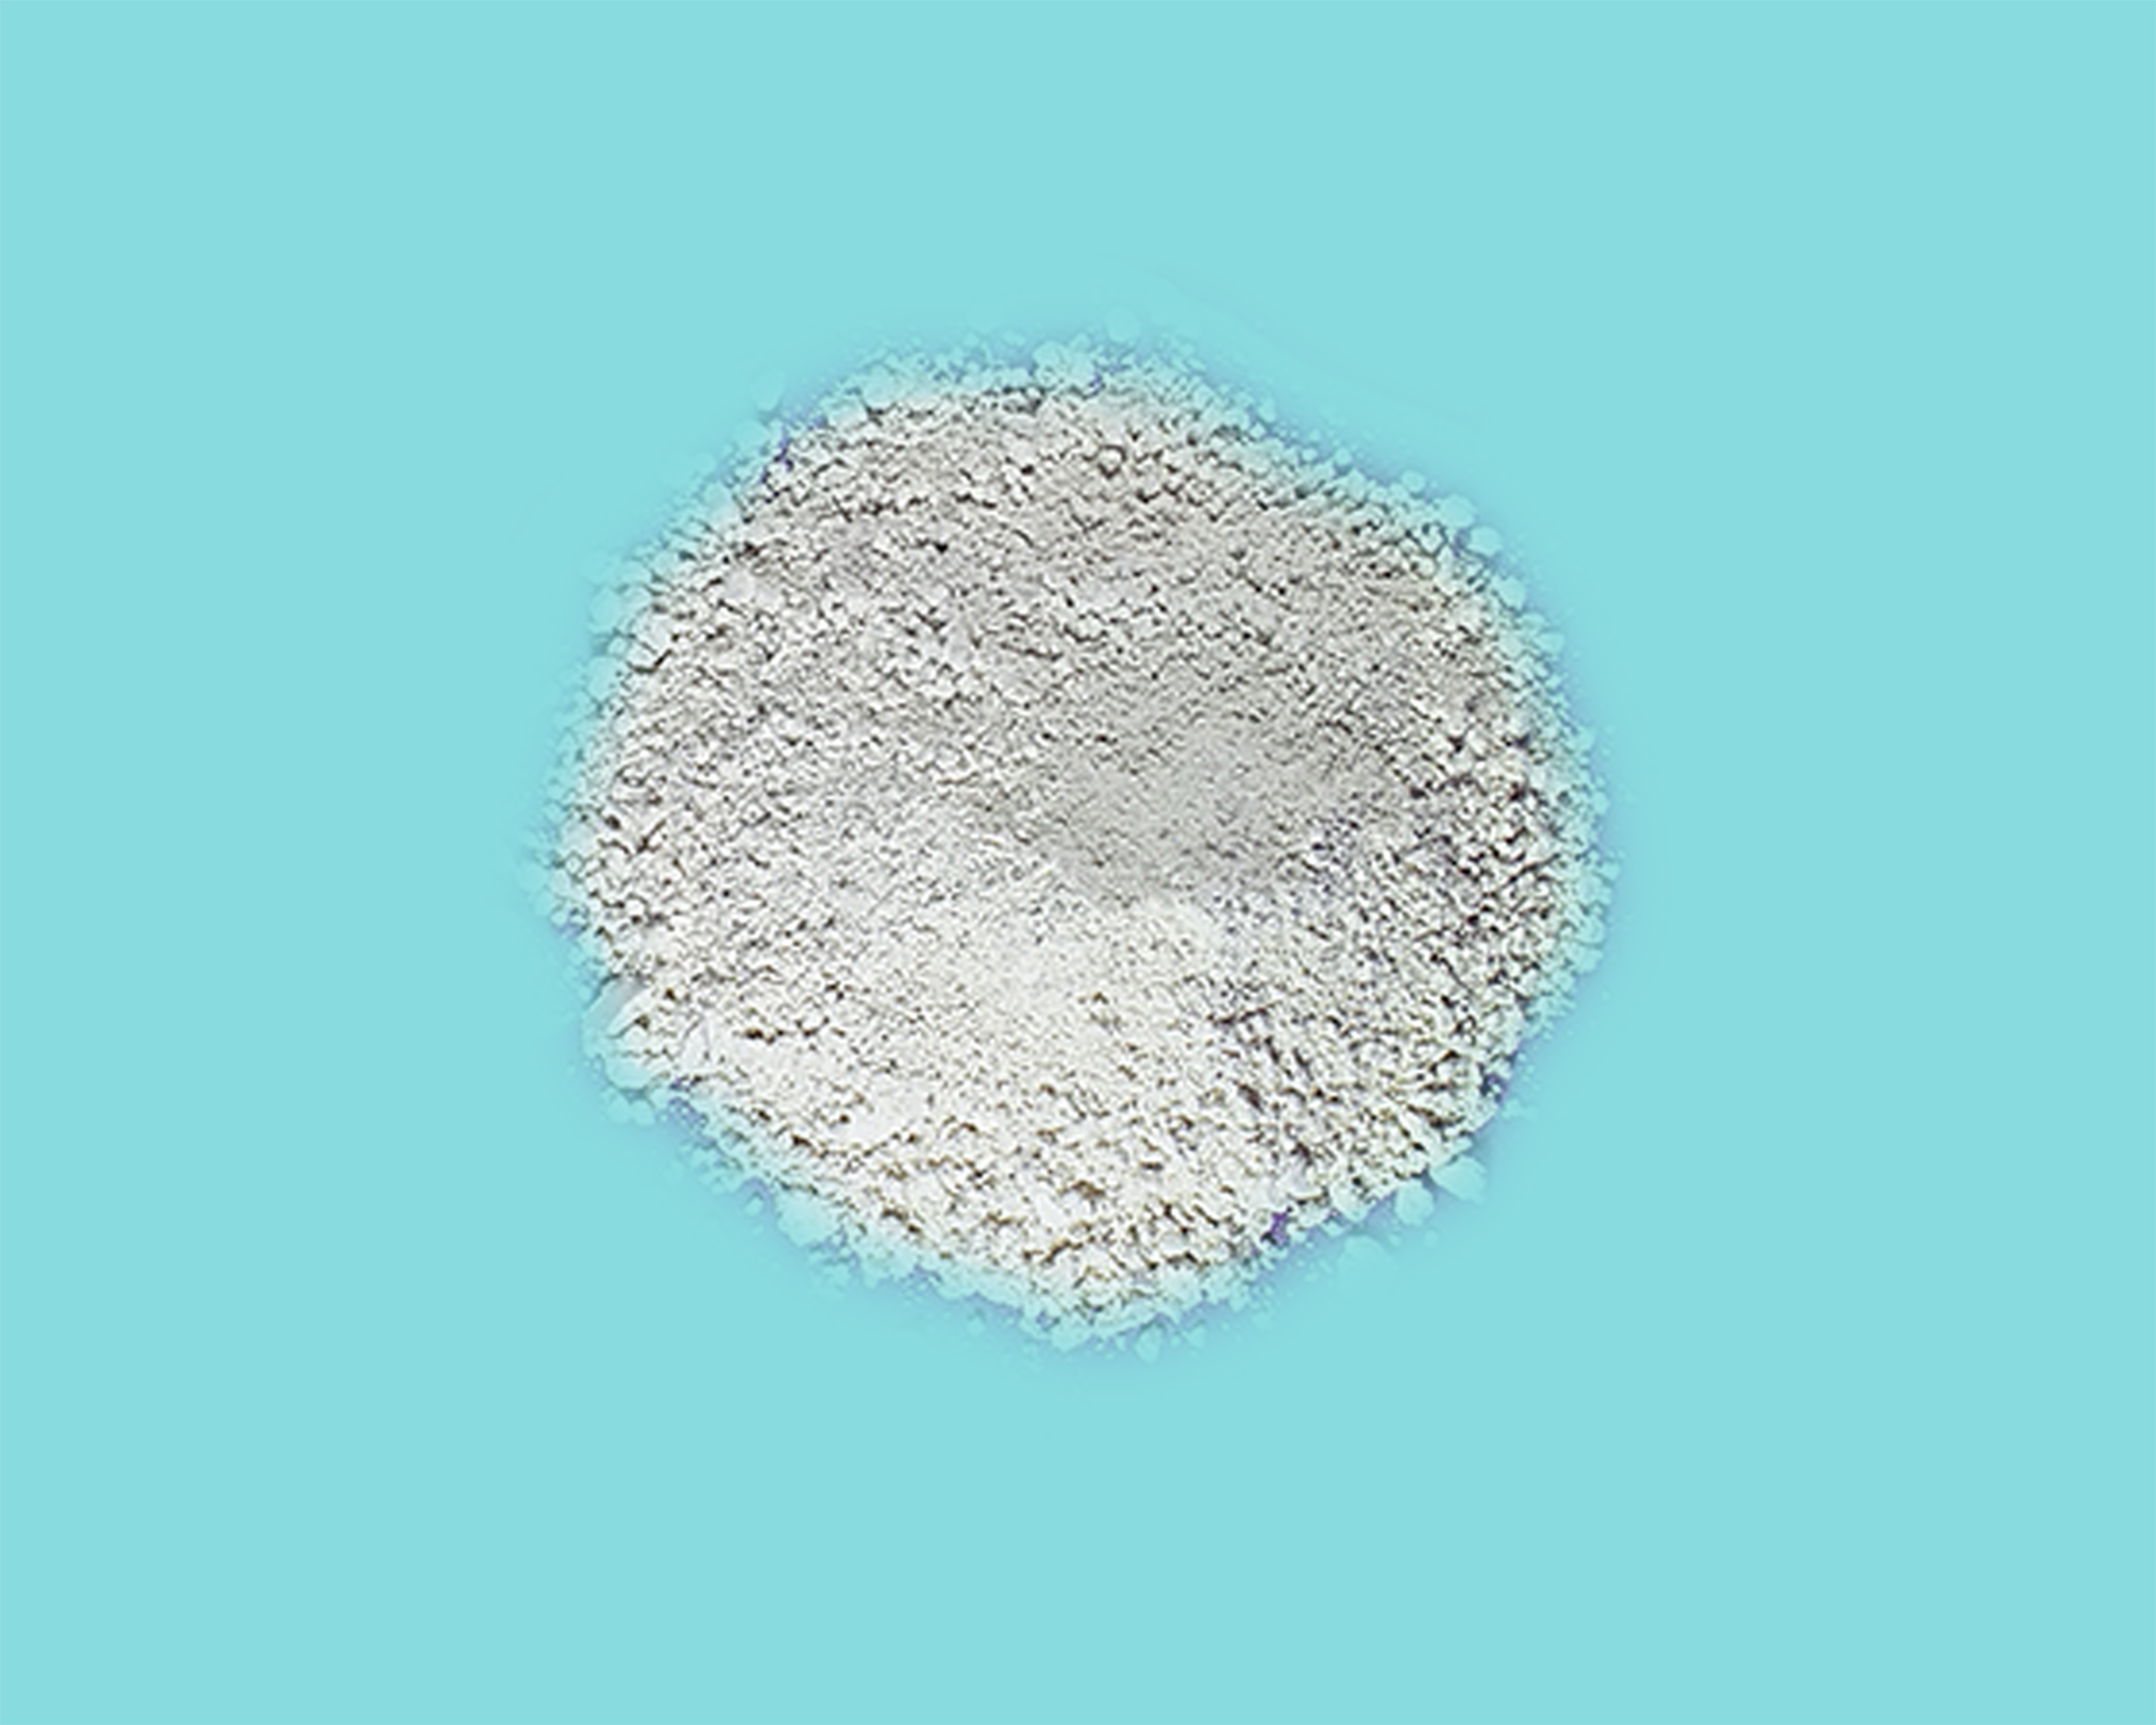 Picture of natural zeolite in powder